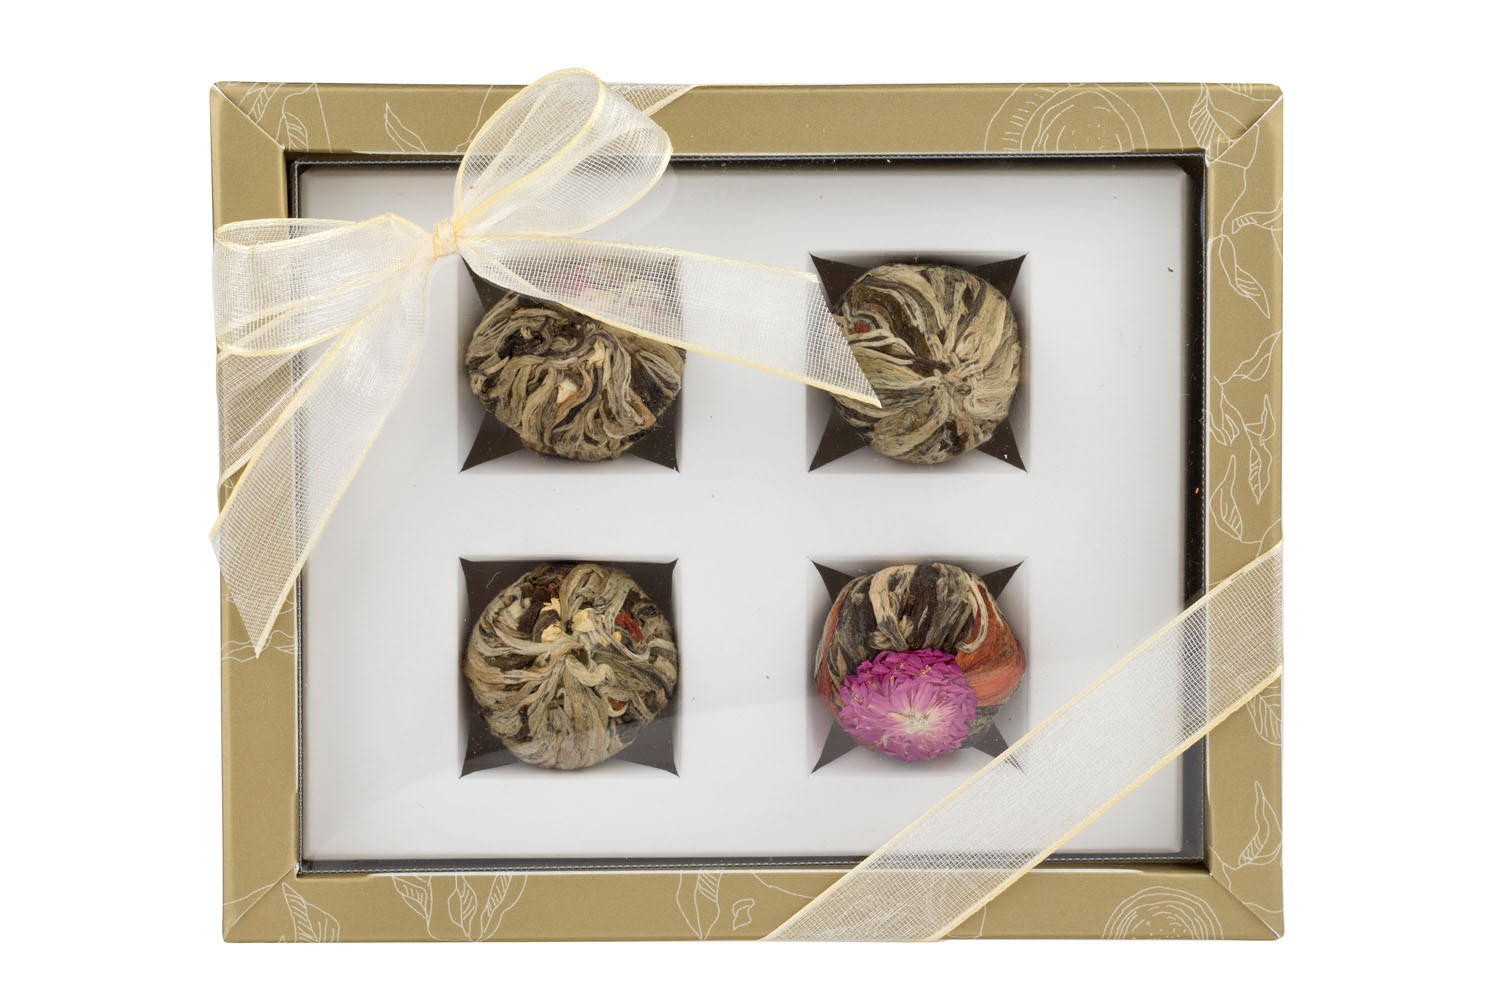 Adikia Golden - gift set of blooming teas